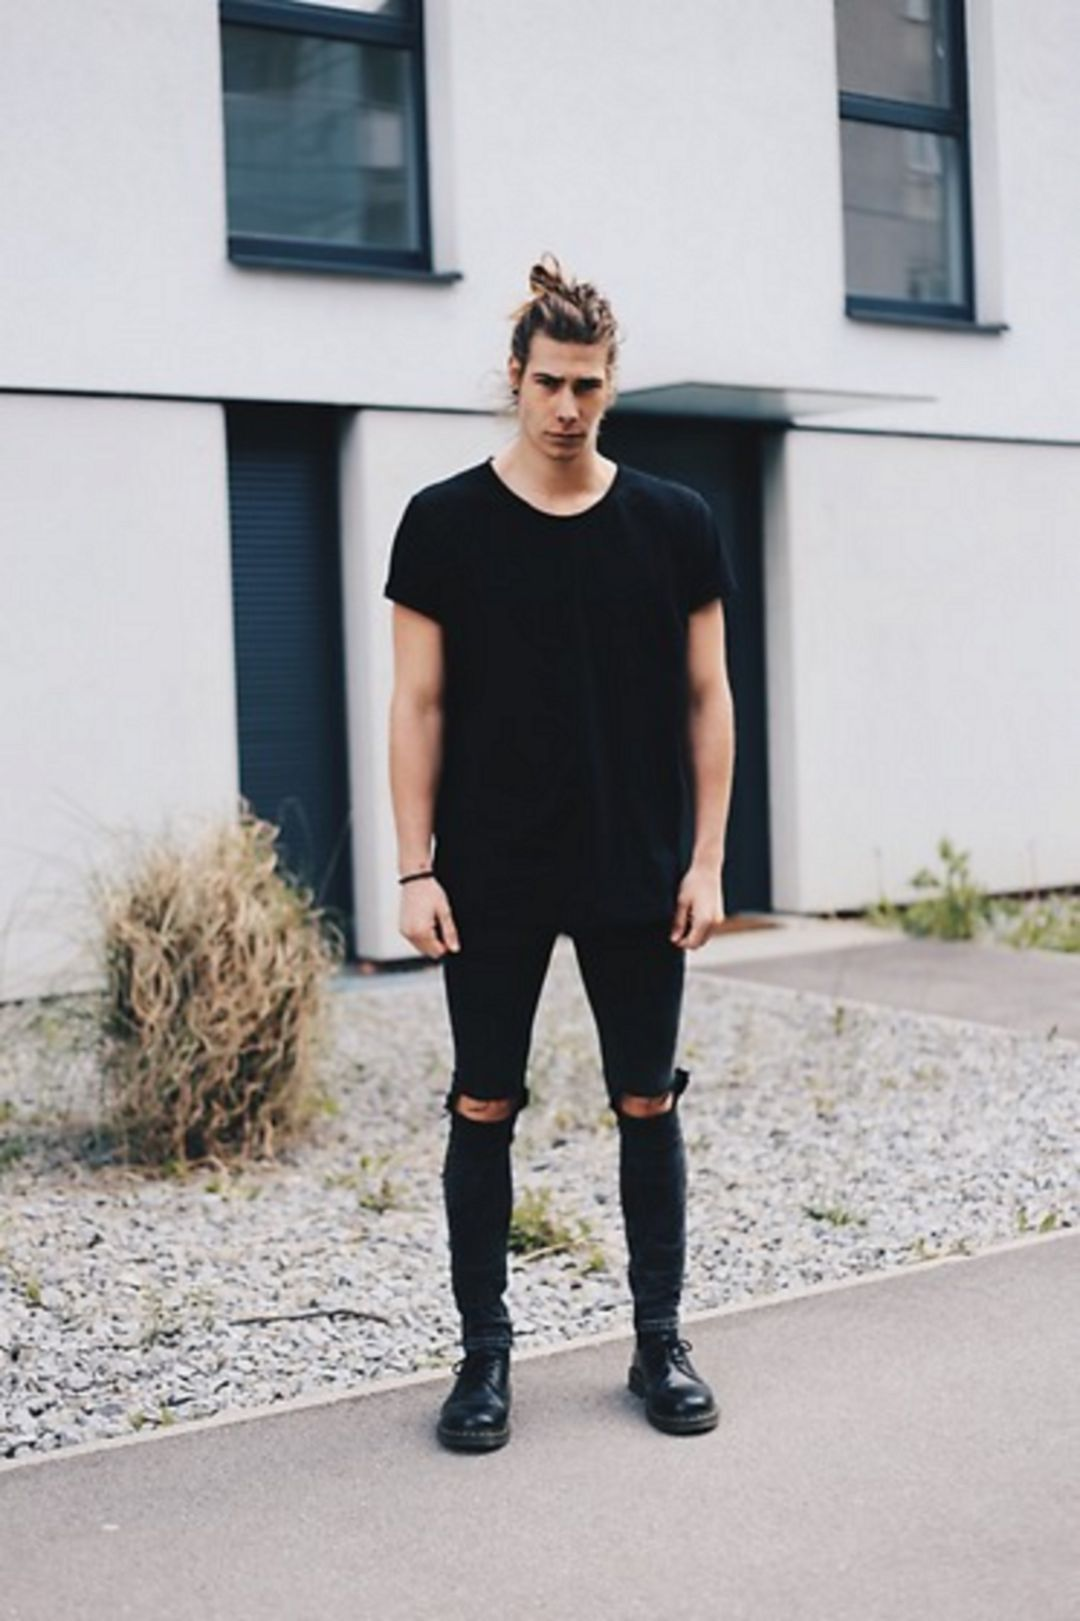 fantastic edgy style for men look handsome